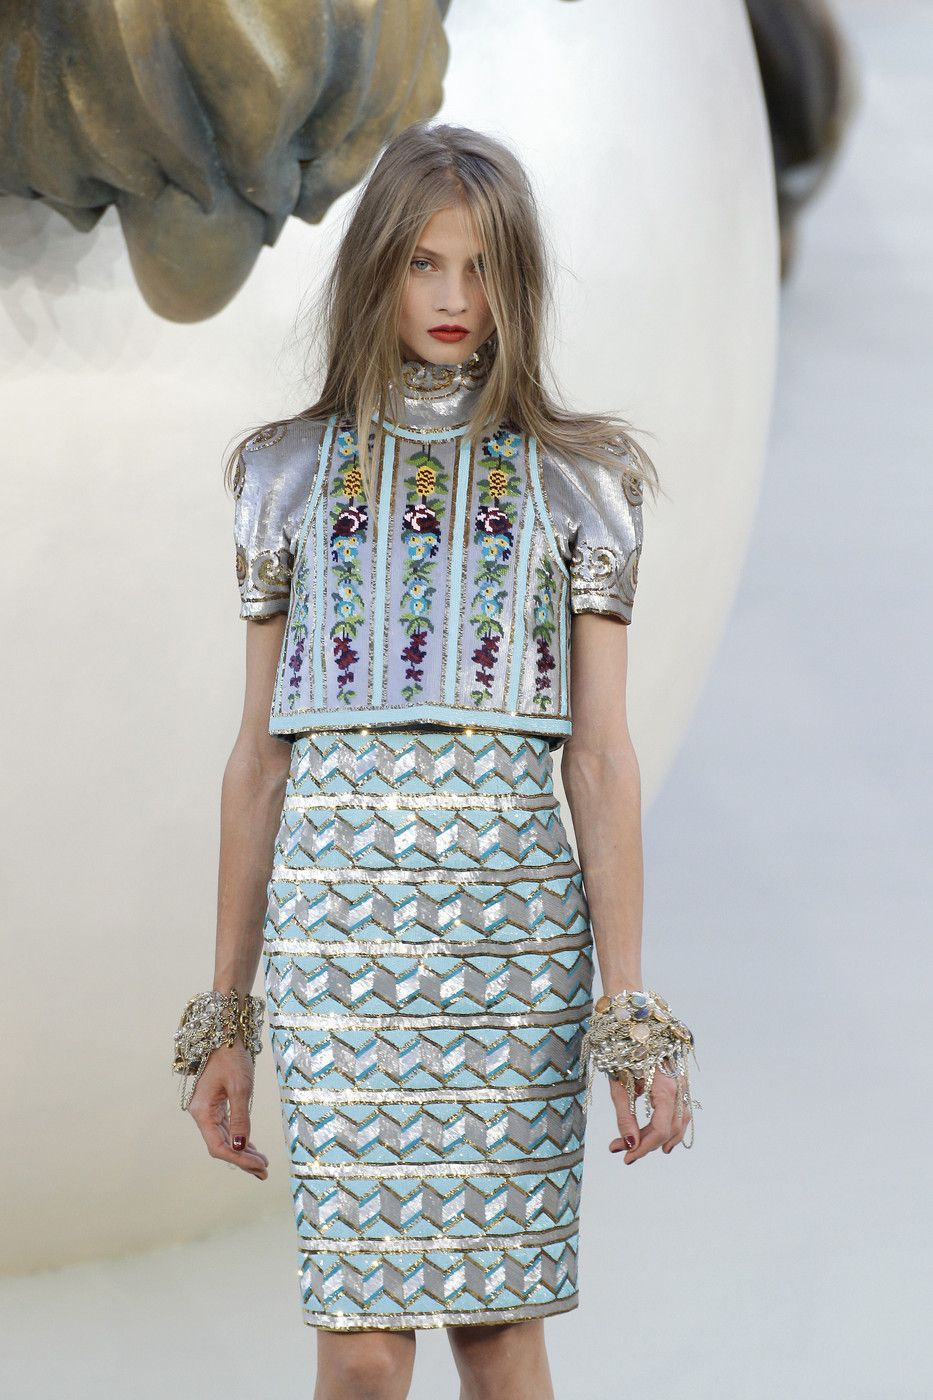 jessicabiscuit:  mulberry-cookies:  Anna @ Chanel Fall 2010 Couture   I follow back similar fashion blogs! x